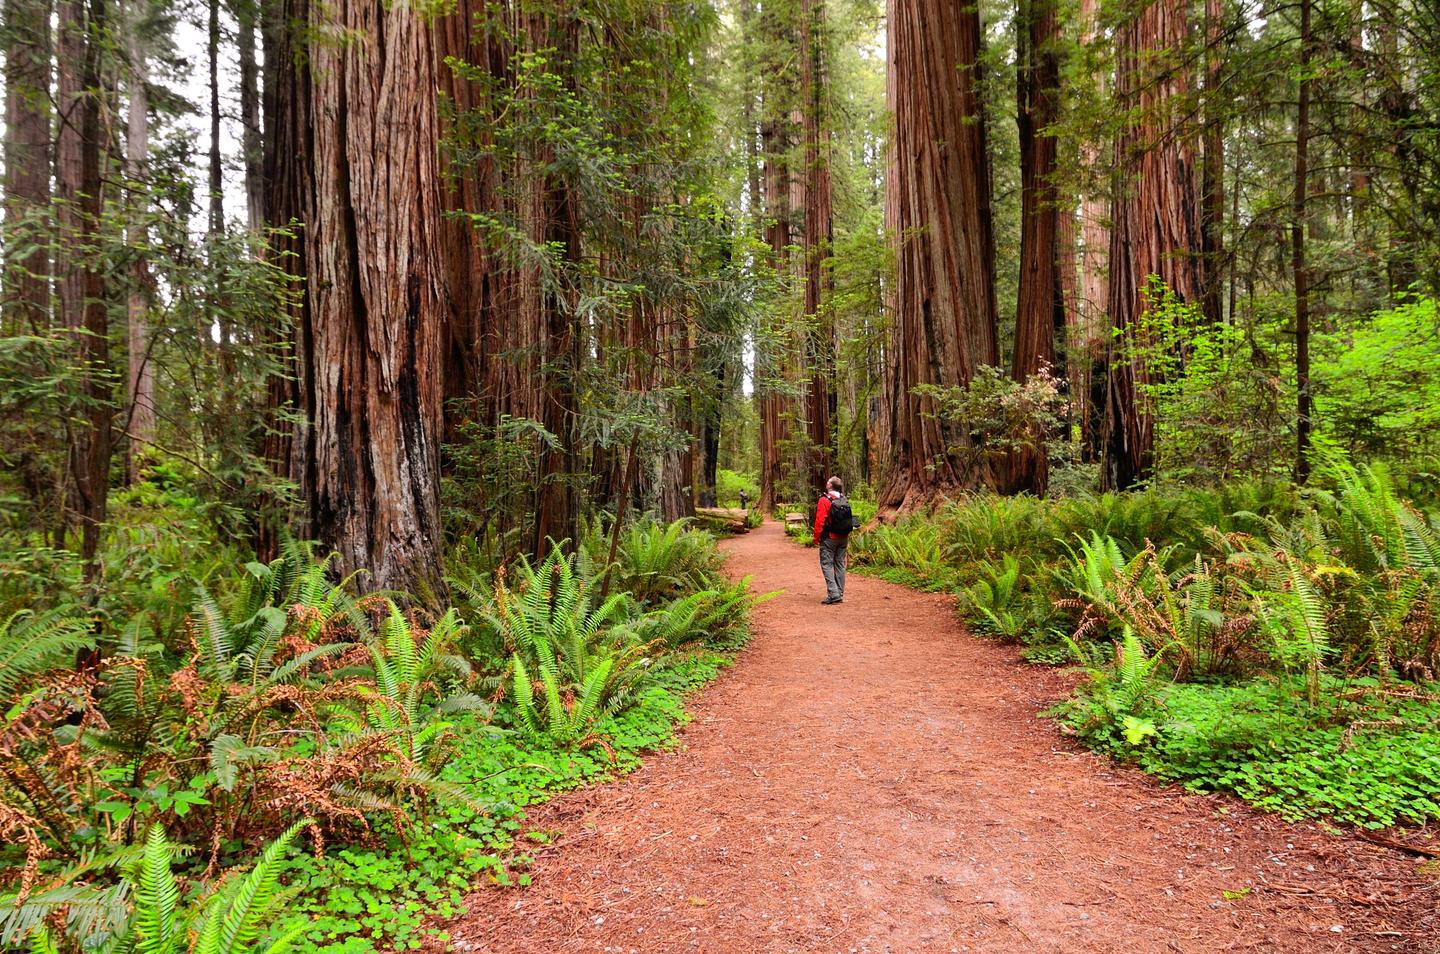 Surrounded by old-growth redwoods.Walking though redwood forests is a beautiful experience.